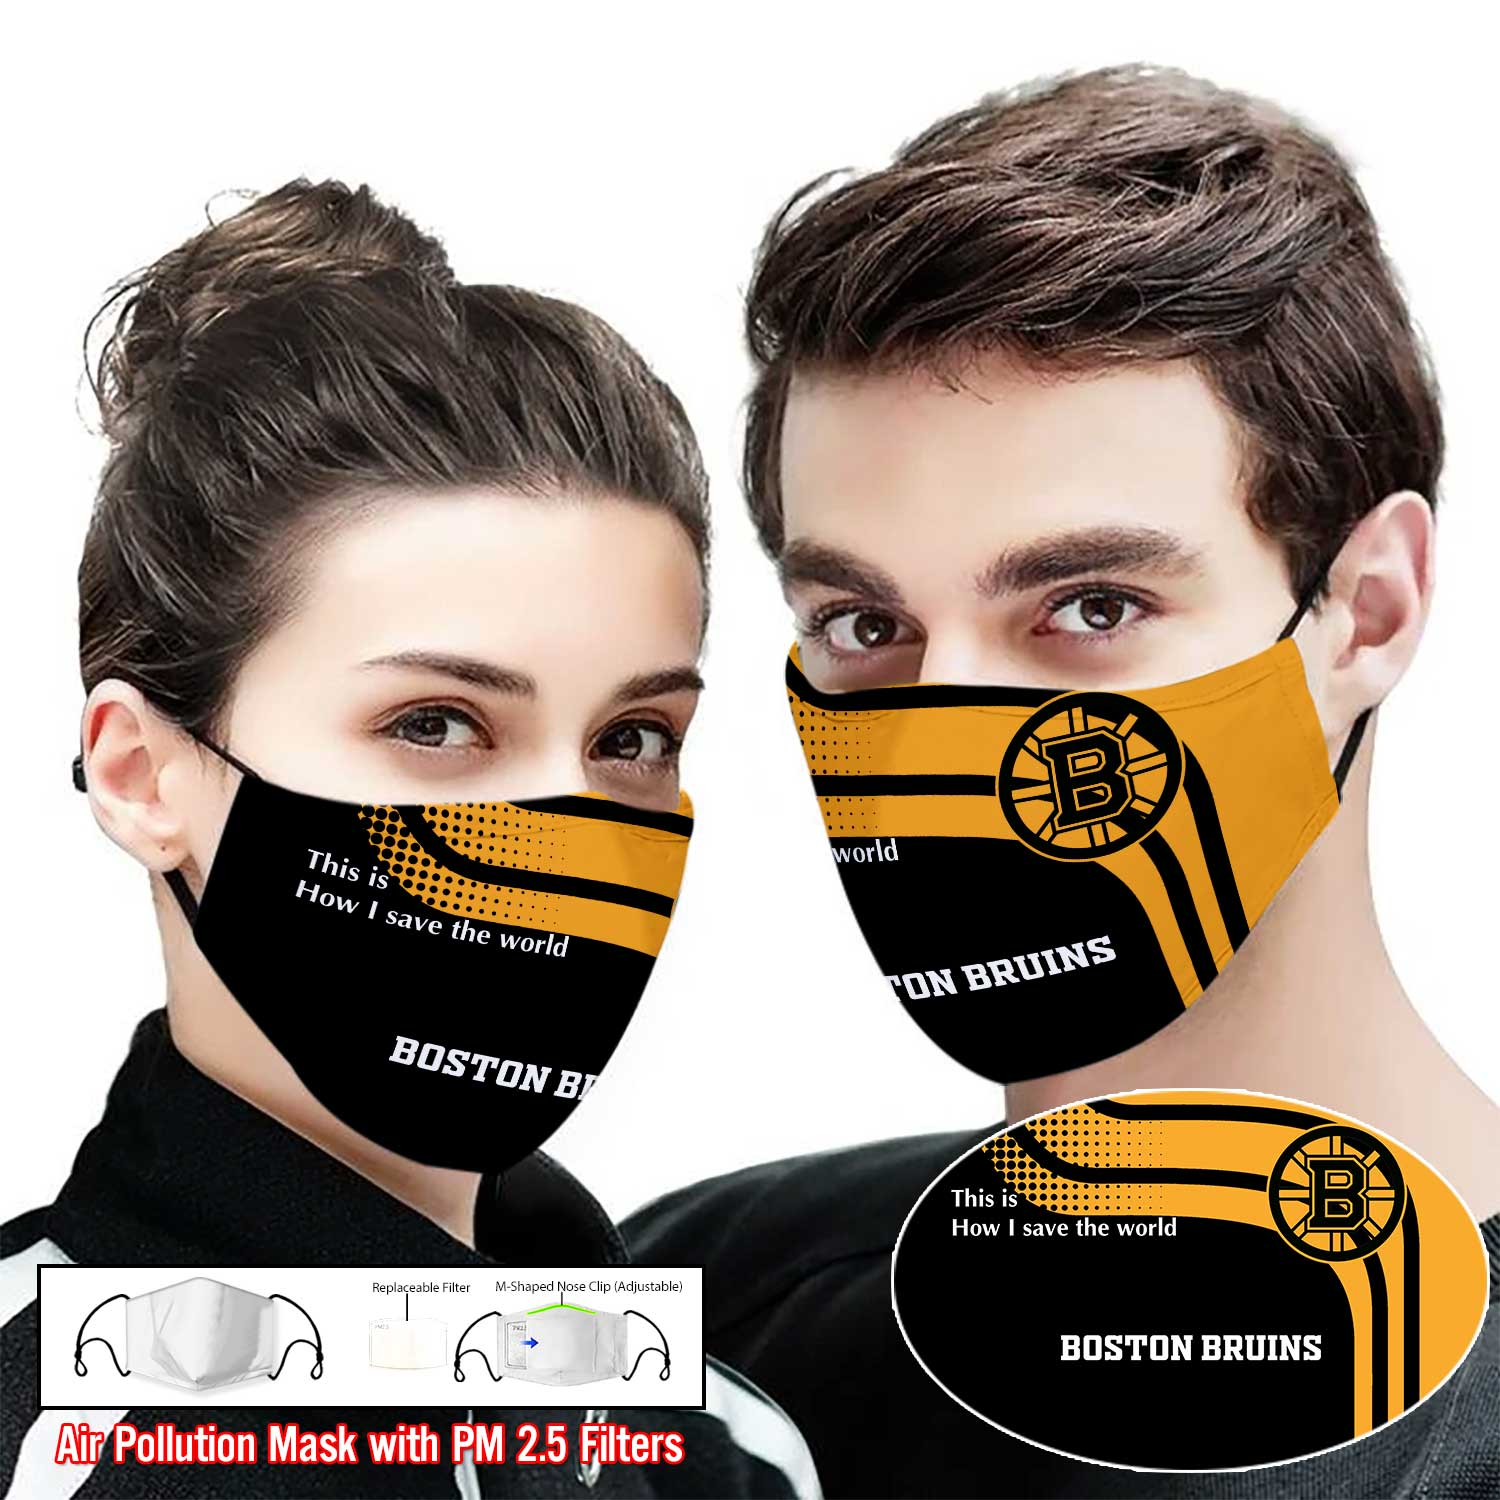 Boston bruins this is how i save the world full printing face mask 2